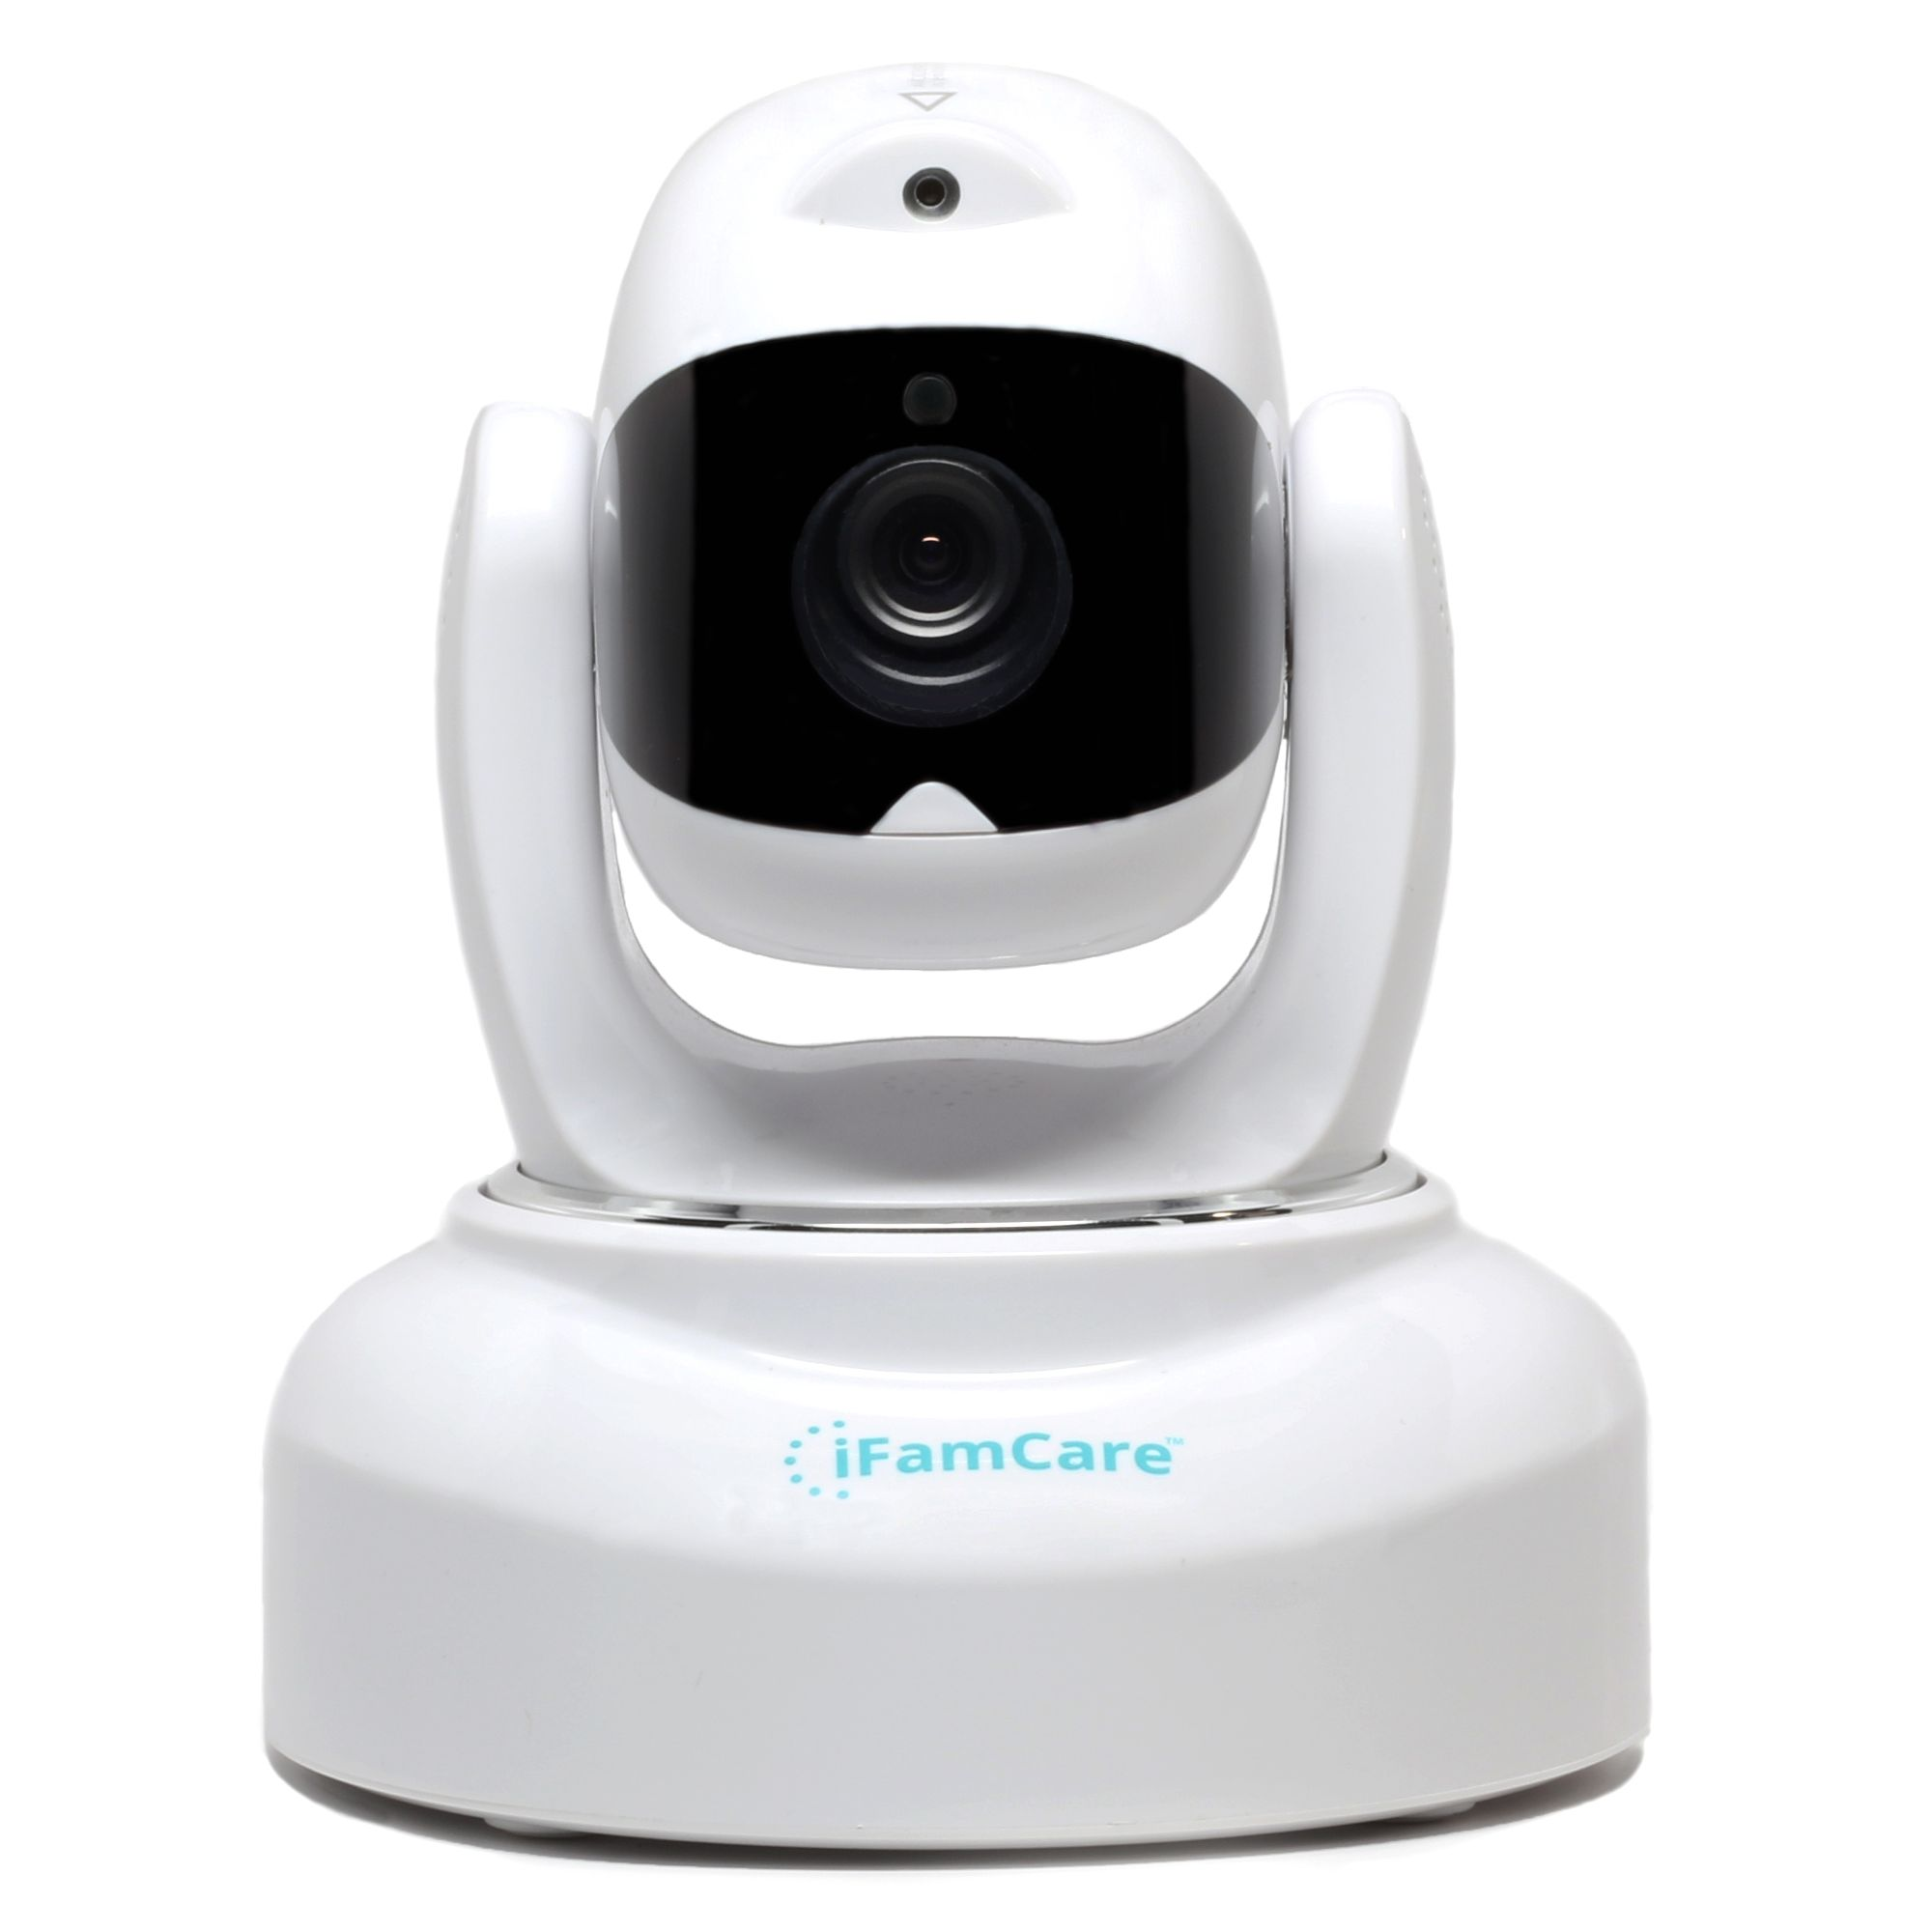 Ifamcare Helmet Video Monitor White